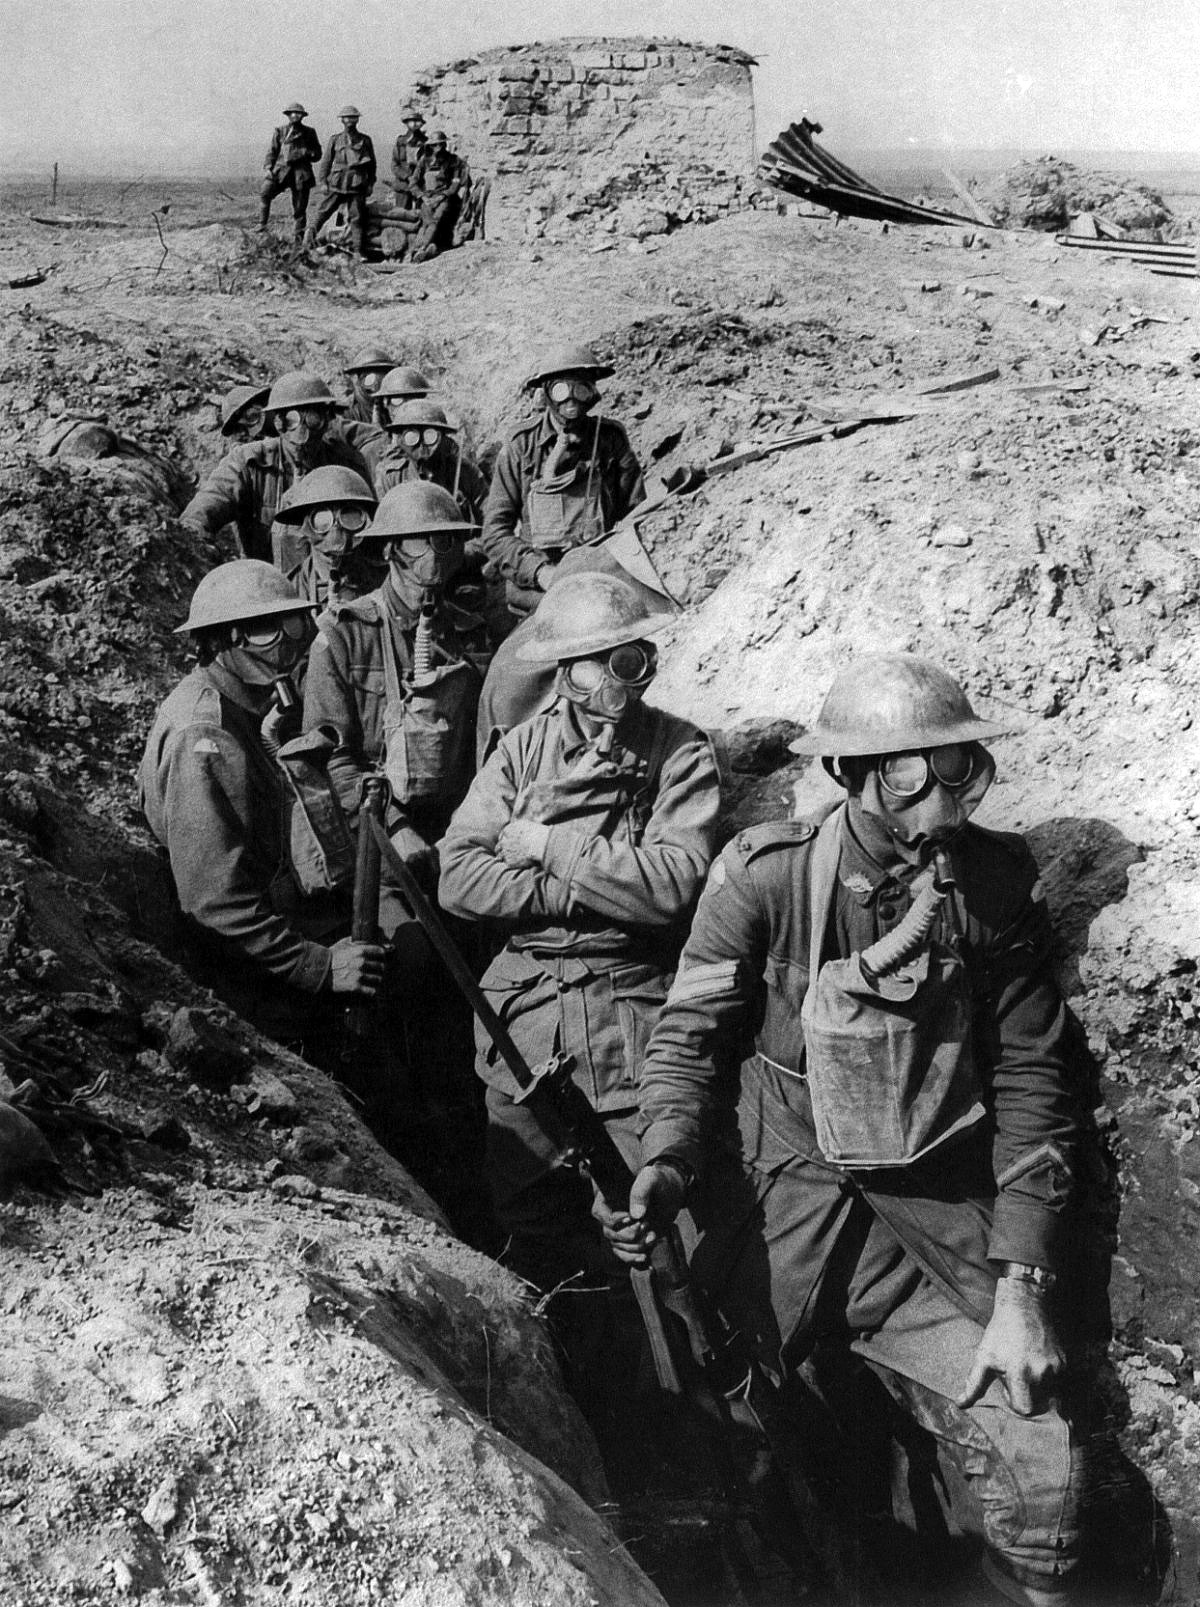 https://i0.wp.com/upload.wikimedia.org/wikipedia/commons/3/34/Australian_infantry_small_box_respirators_Ypres_1917.jpg